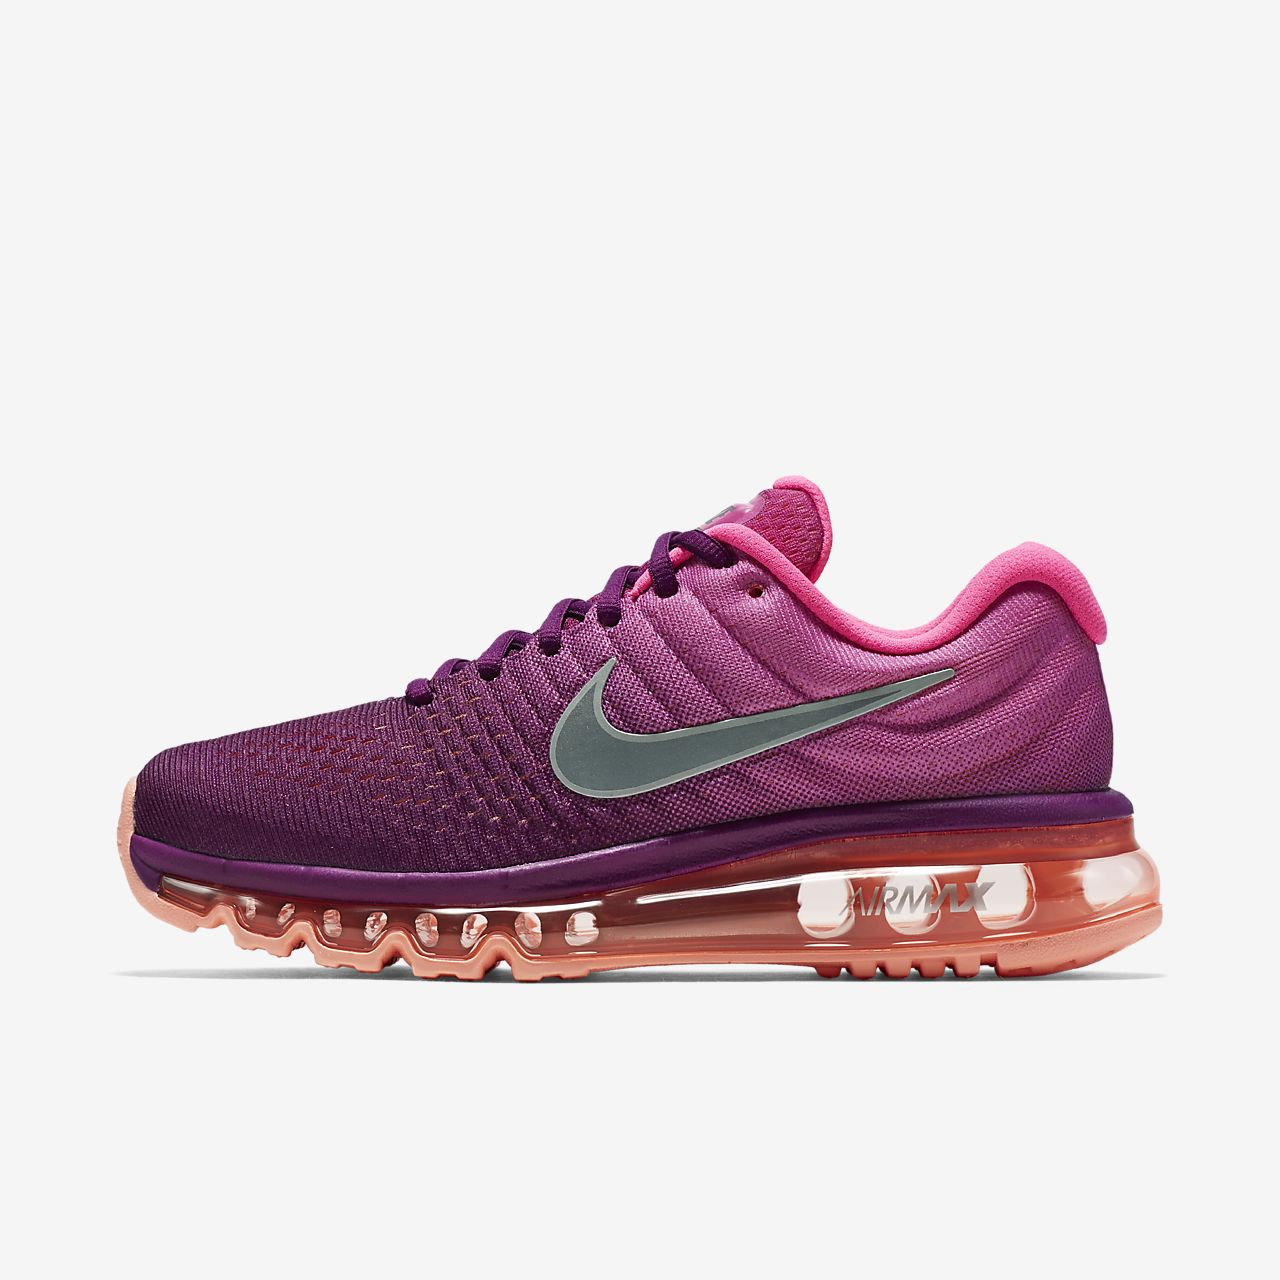 NIKE AIR MAX 2017 Womens Bright Grape Fire Pink Running Shoe 849560-502 Sz 10.5